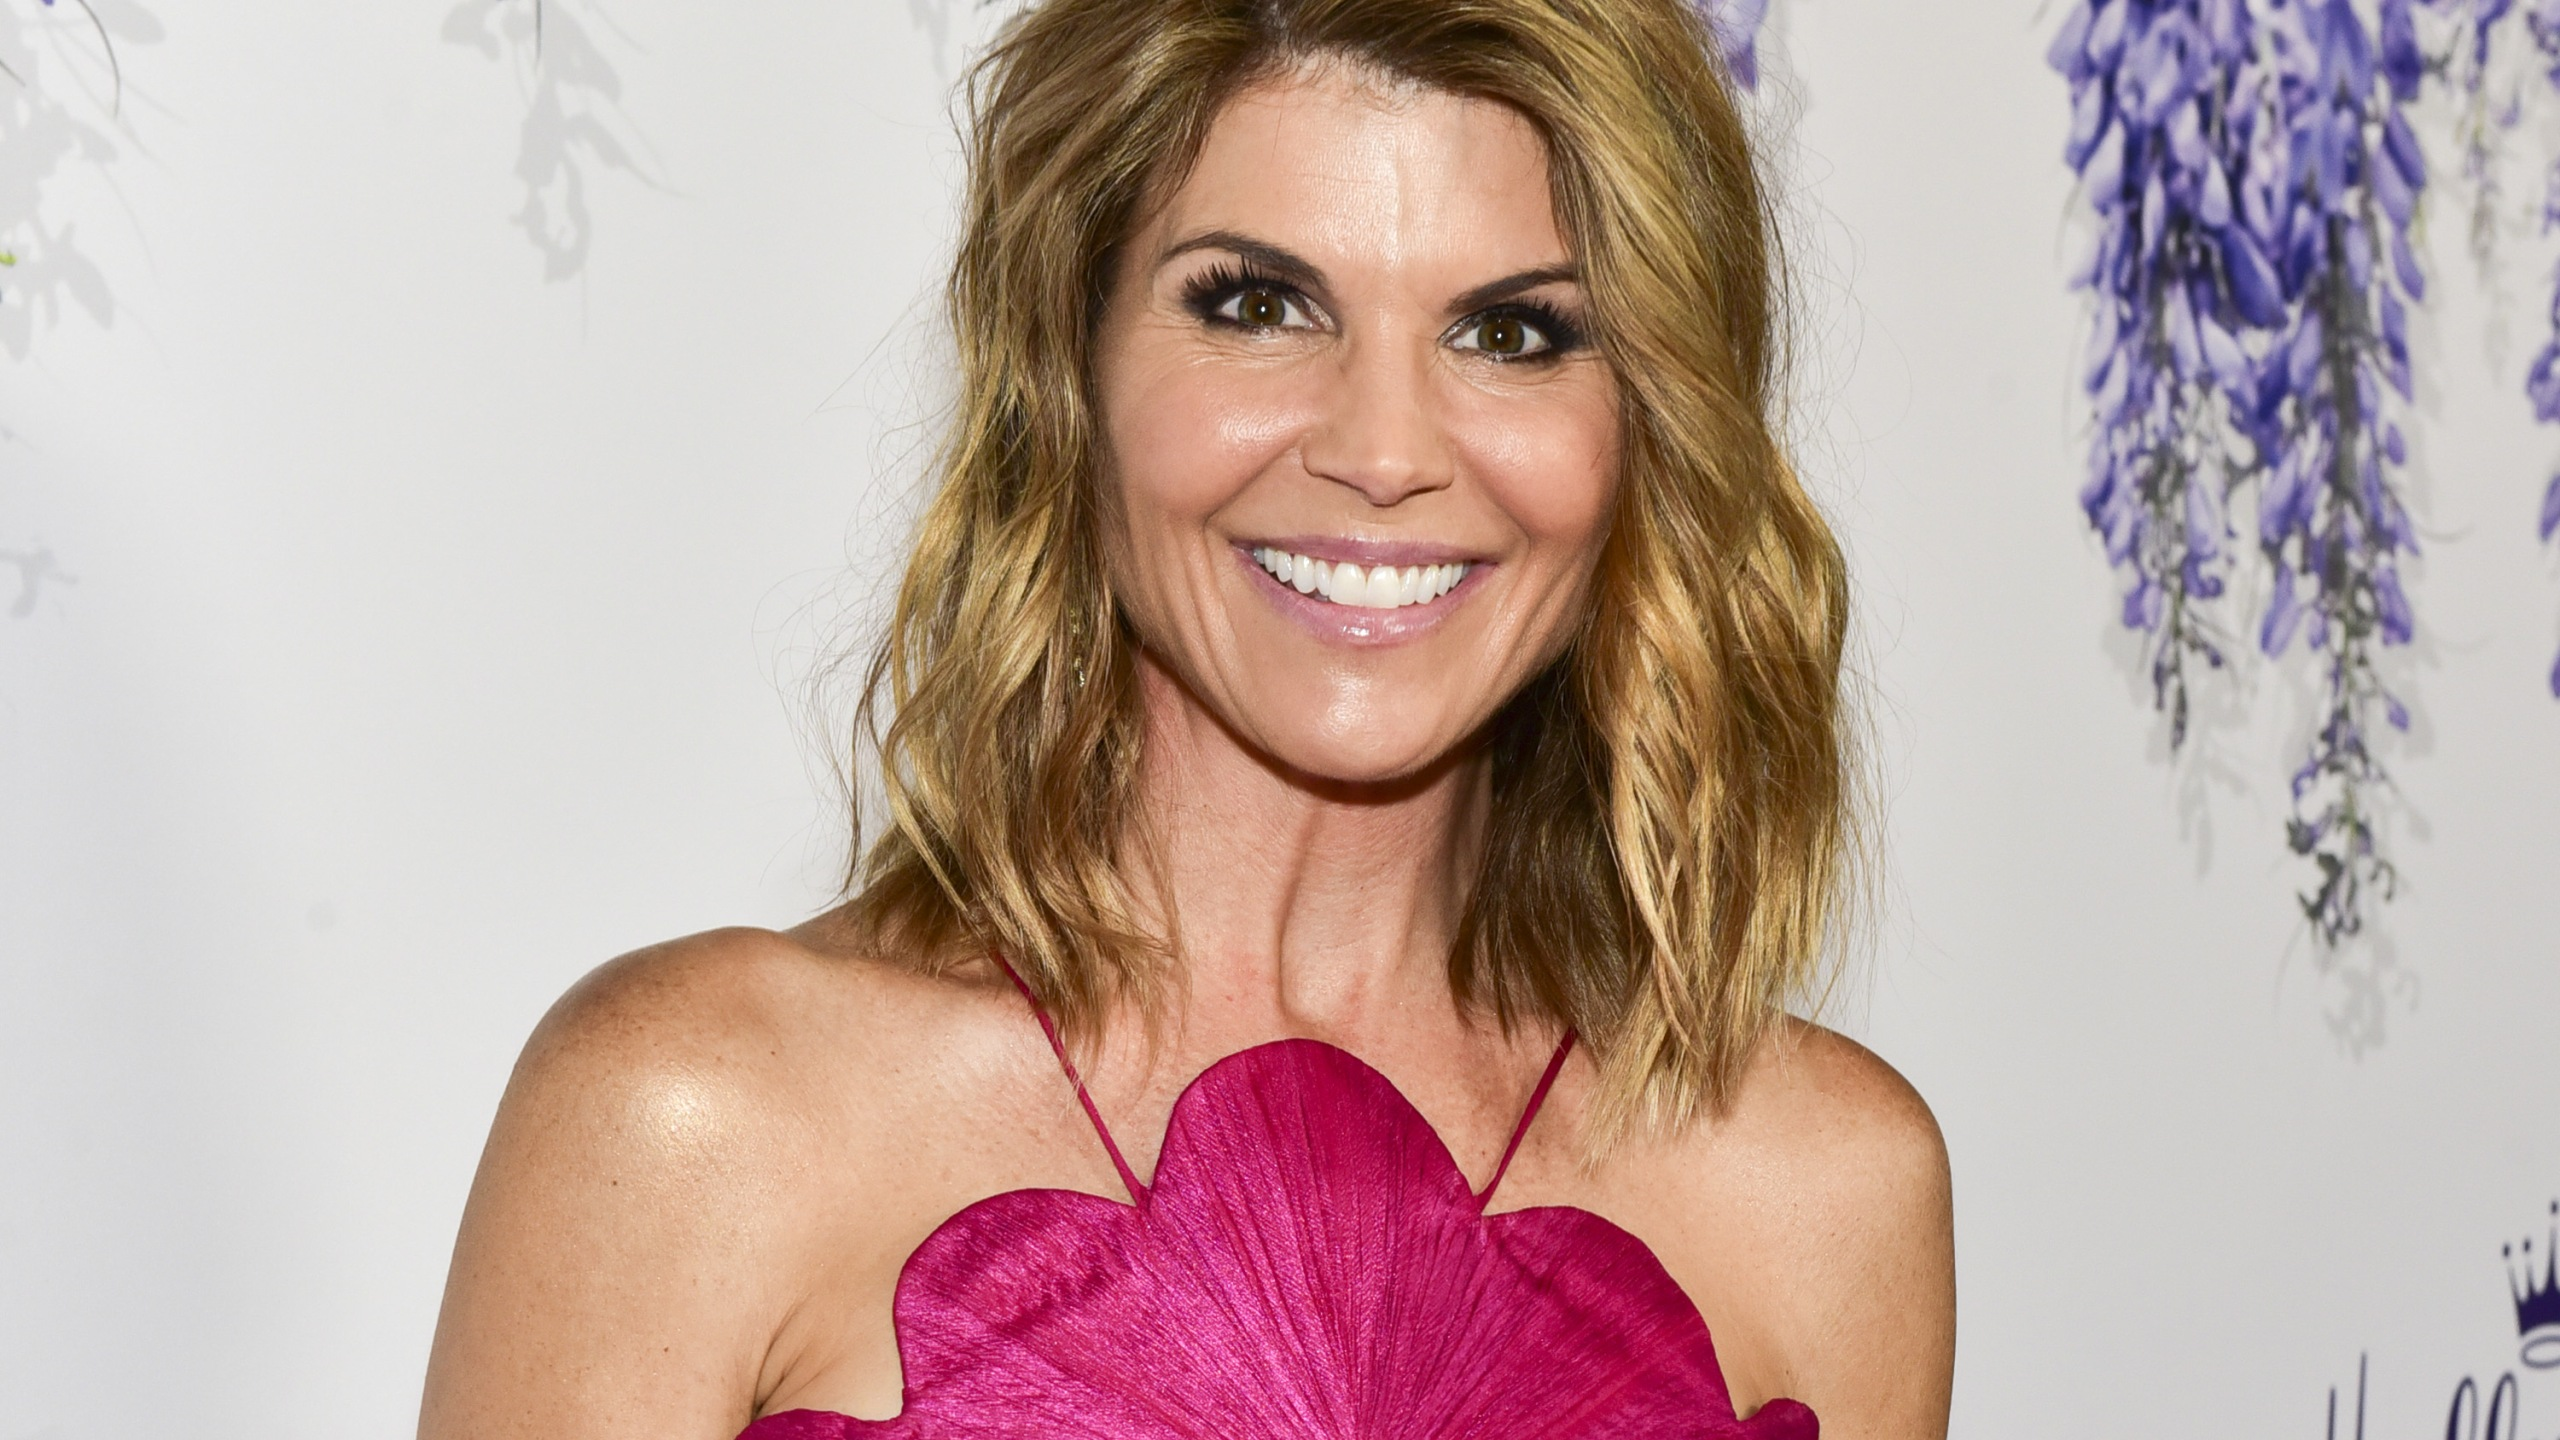 Lori Loughlin attends the 2018 Hallmark Channel Summer TCA at a private residence on July 26, 2018 in Beverly Hills, California. (Credit: Rodin Eckenroth/Getty Images)